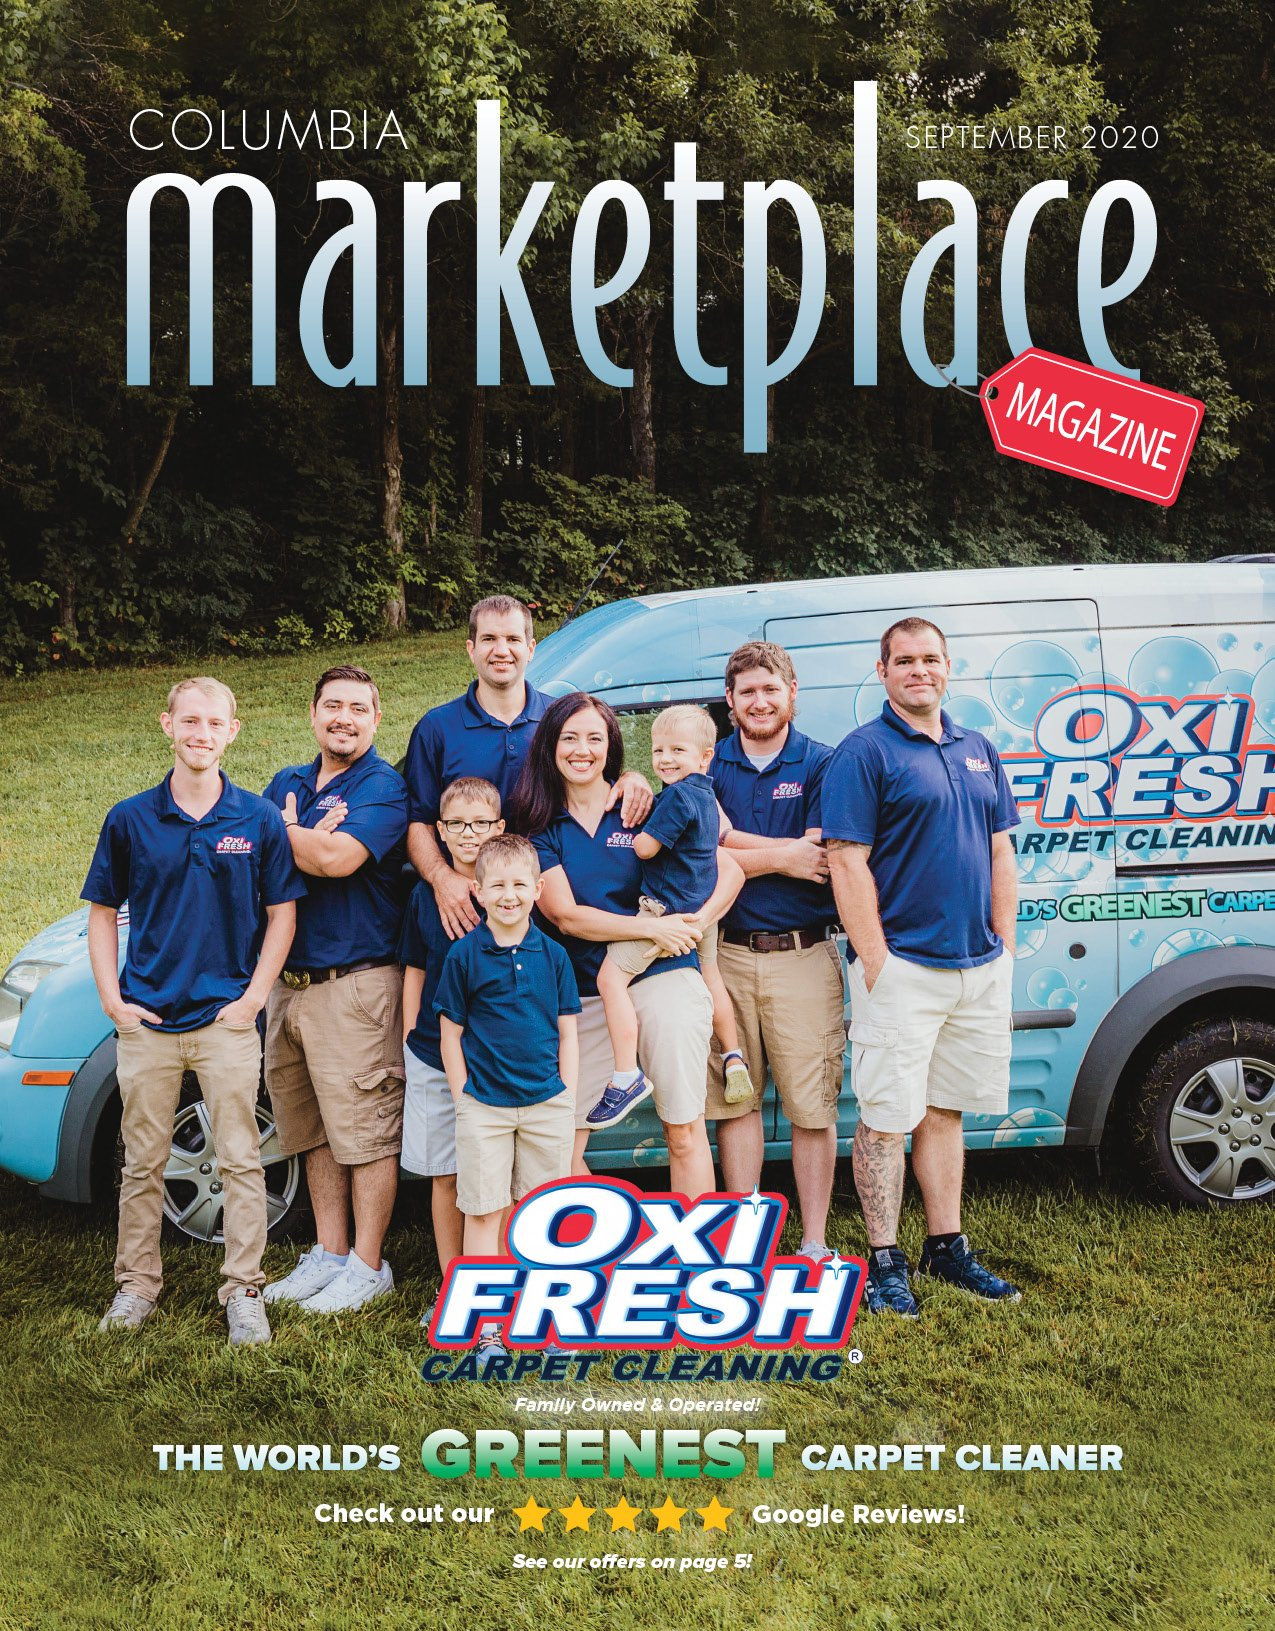 Marketplace Magazine by Modern Media Concepts September 2020 Edition Featuring OXI Fresh Carpet Cleaning in Columbia Missouri